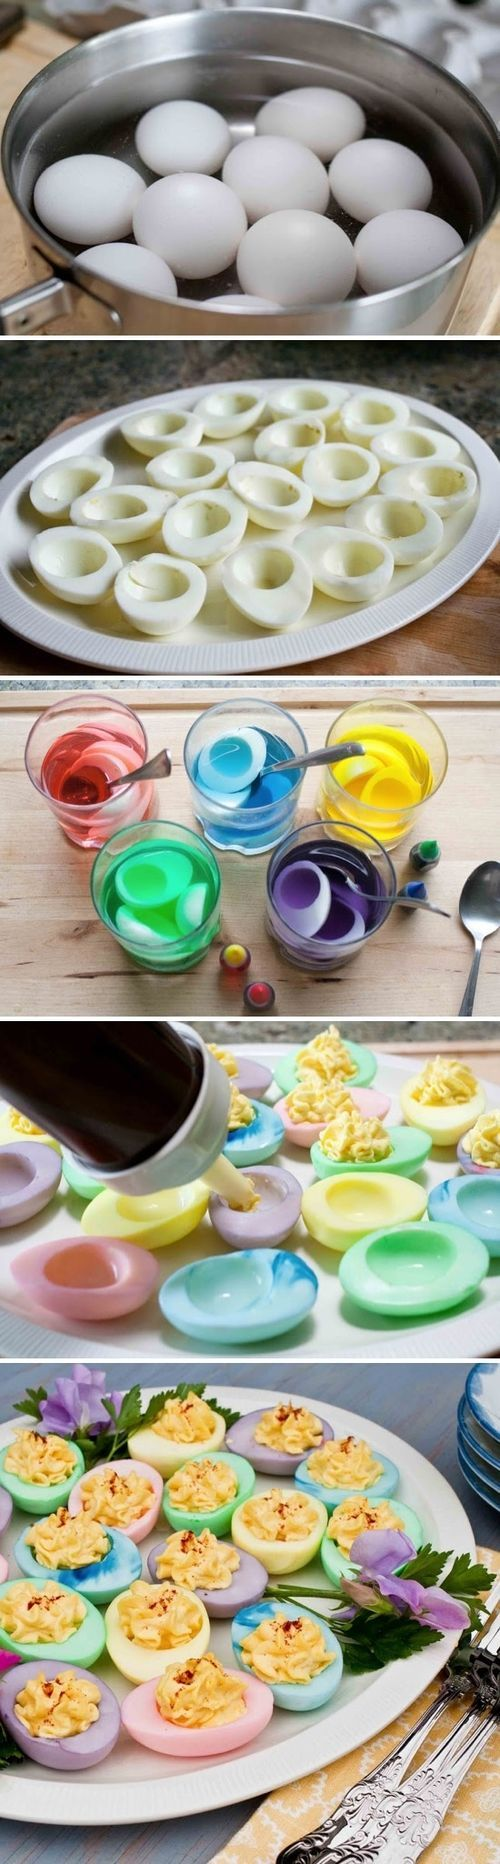 DIY Colorful Easter Eggs DIY Projects / UsefulDIY.com